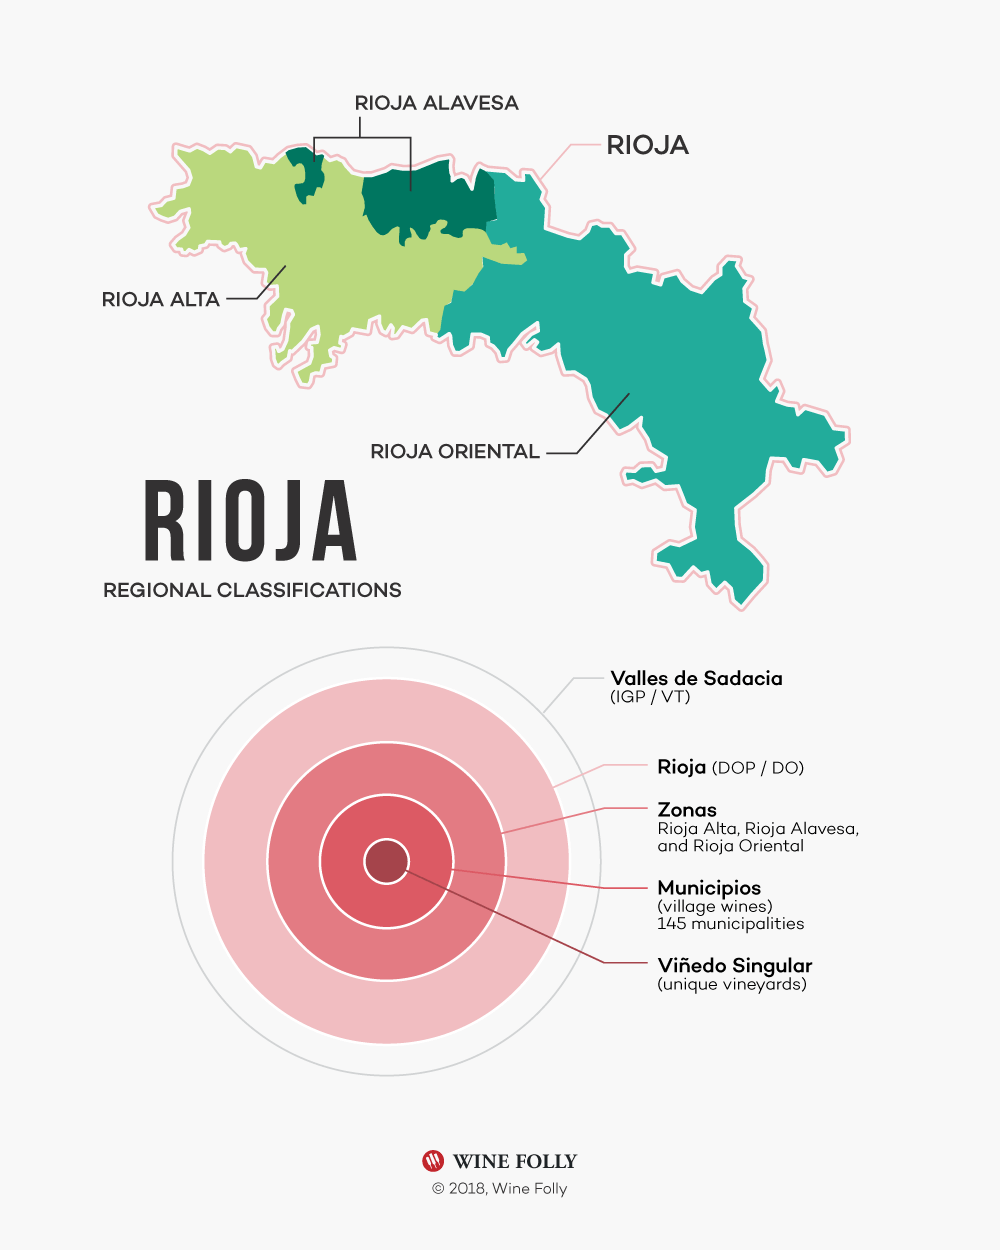 Rioja regional wine classification system diagram and map by Wine Folly